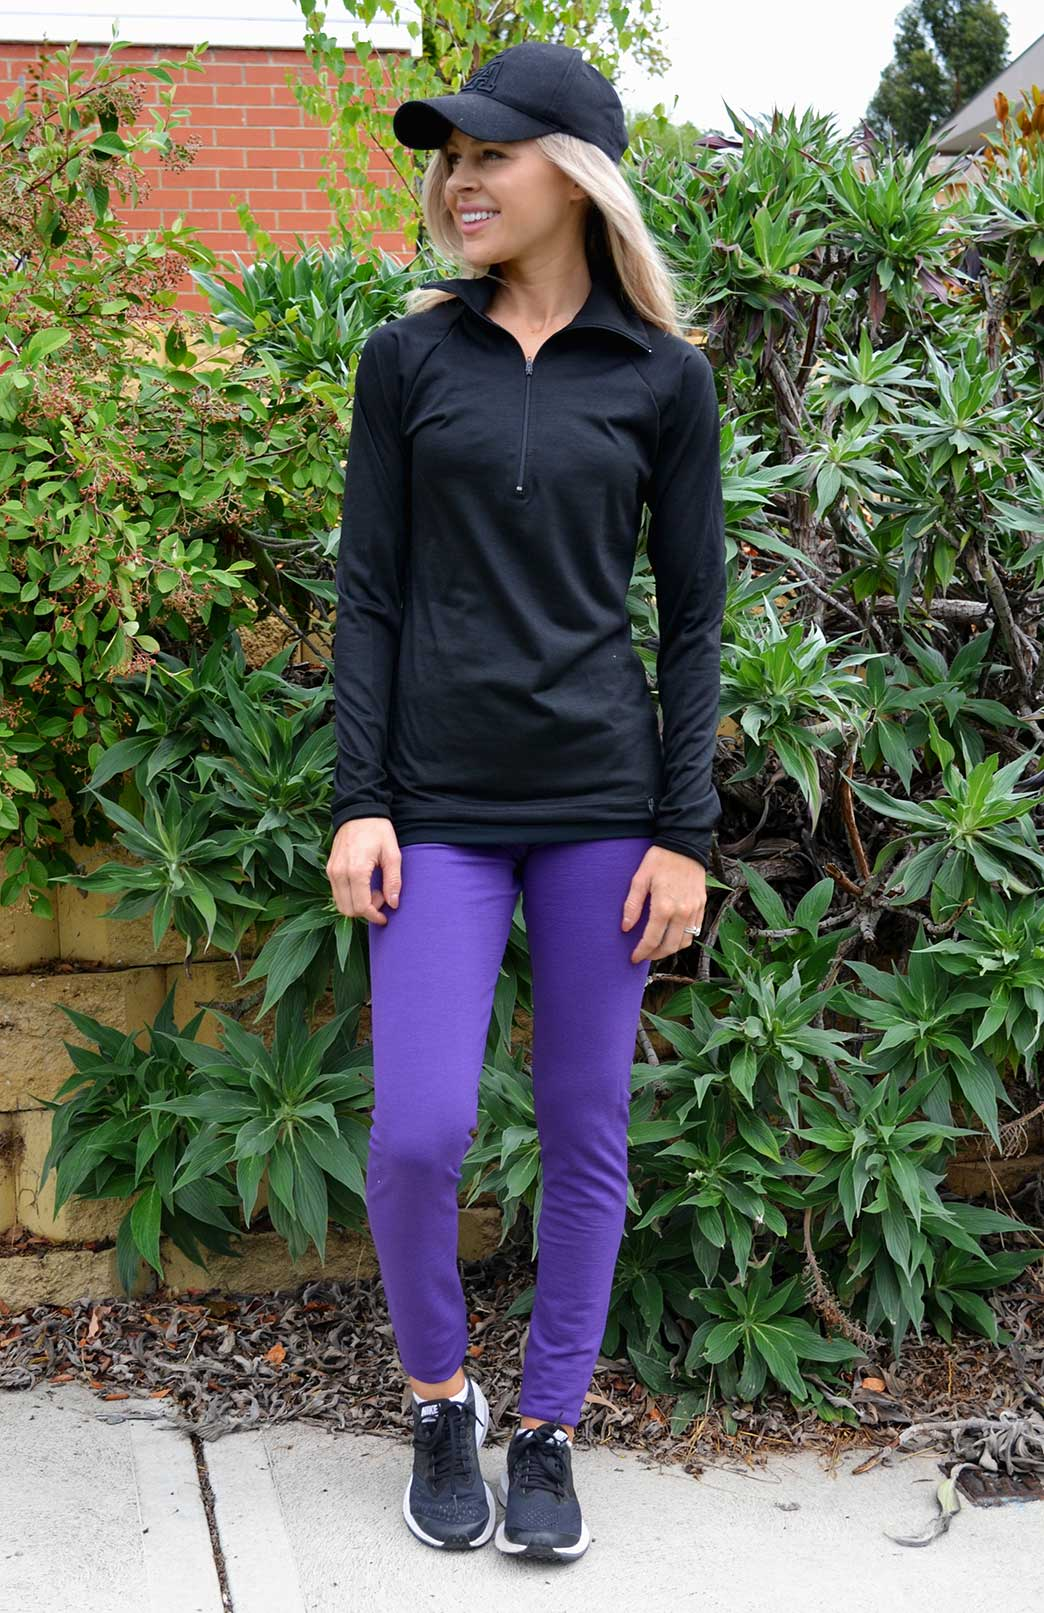 Leggings - 240g - Women's 240g Violet Purple Thermal Leggings - Smitten Merino Tasmania Australia